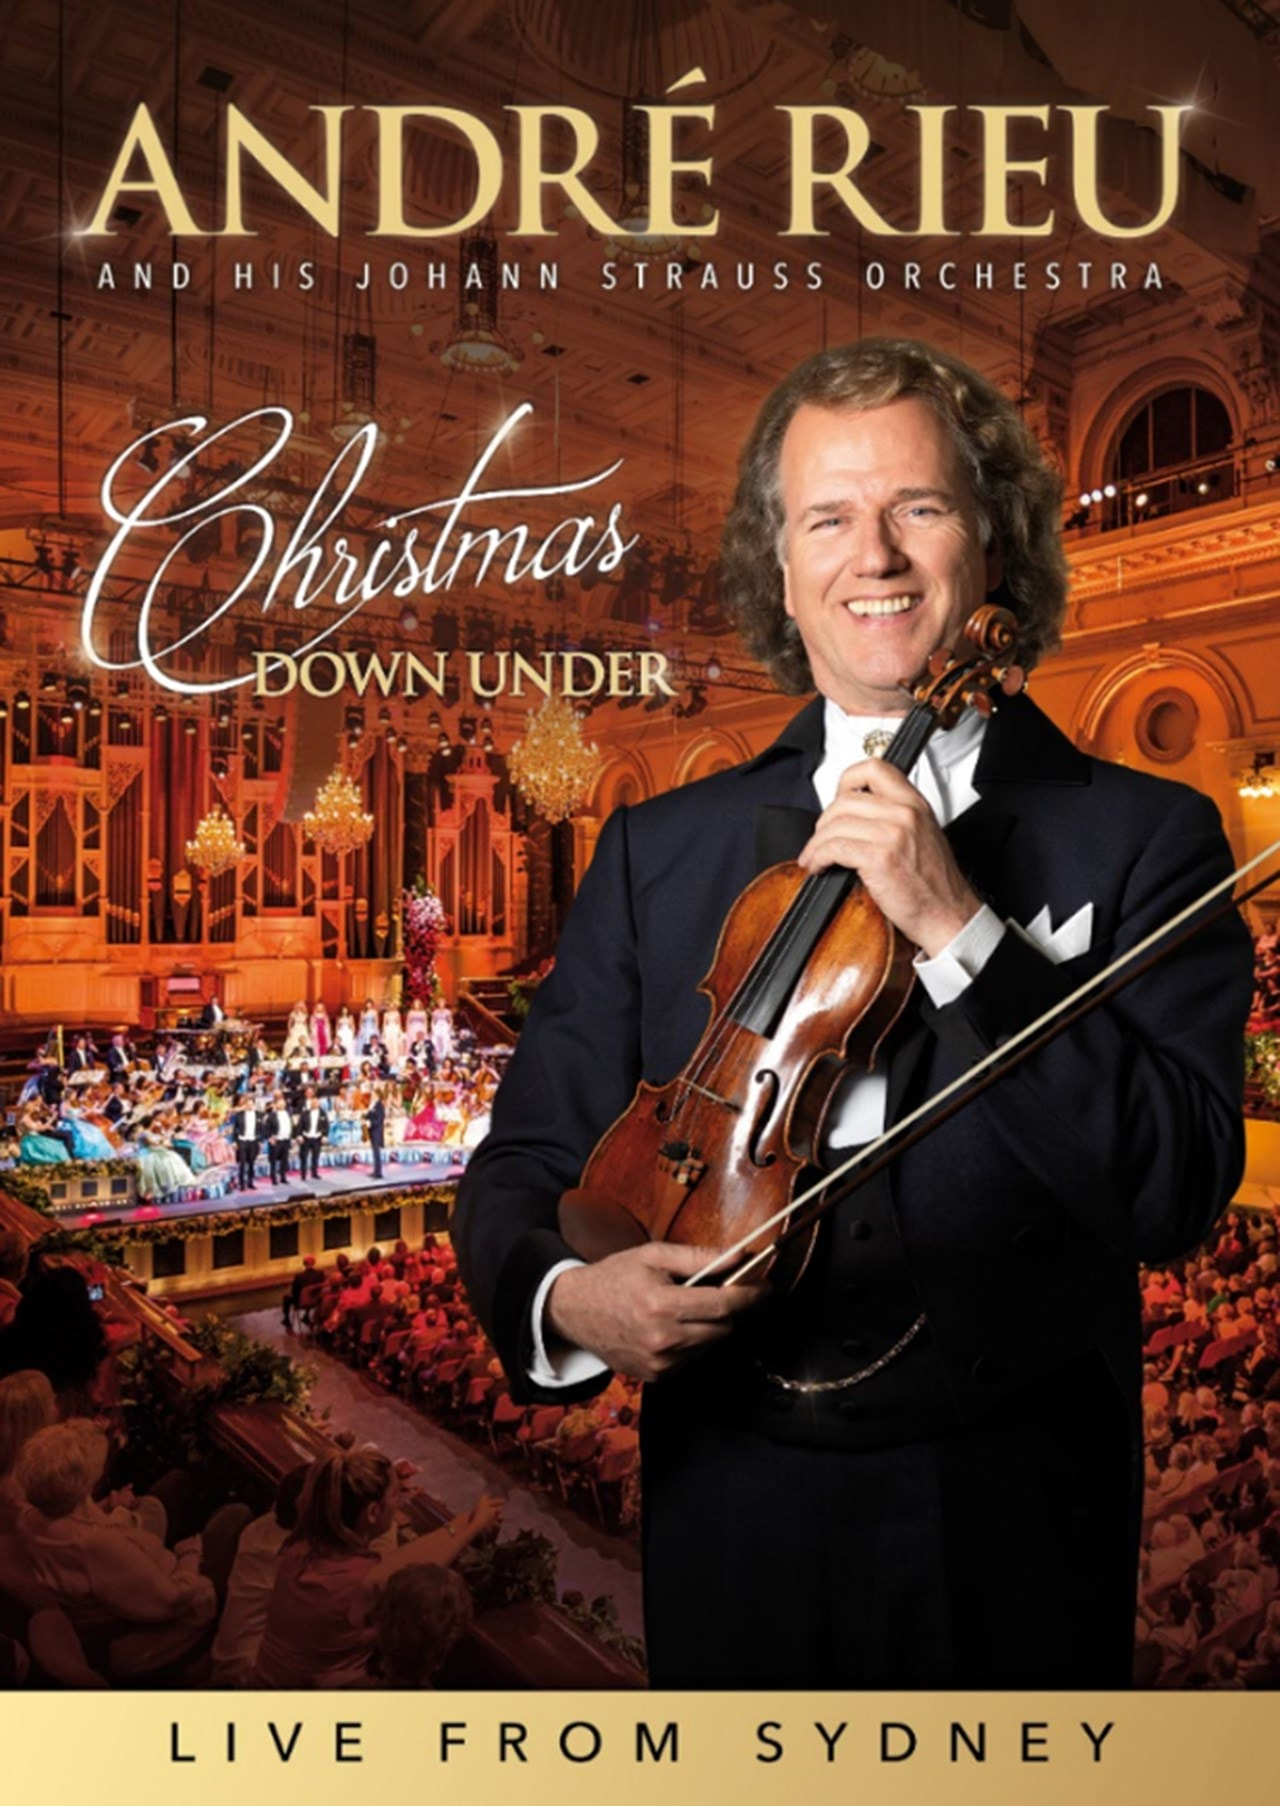 Andre Rieu: Christmas Down Under - Live from Sydney - 1